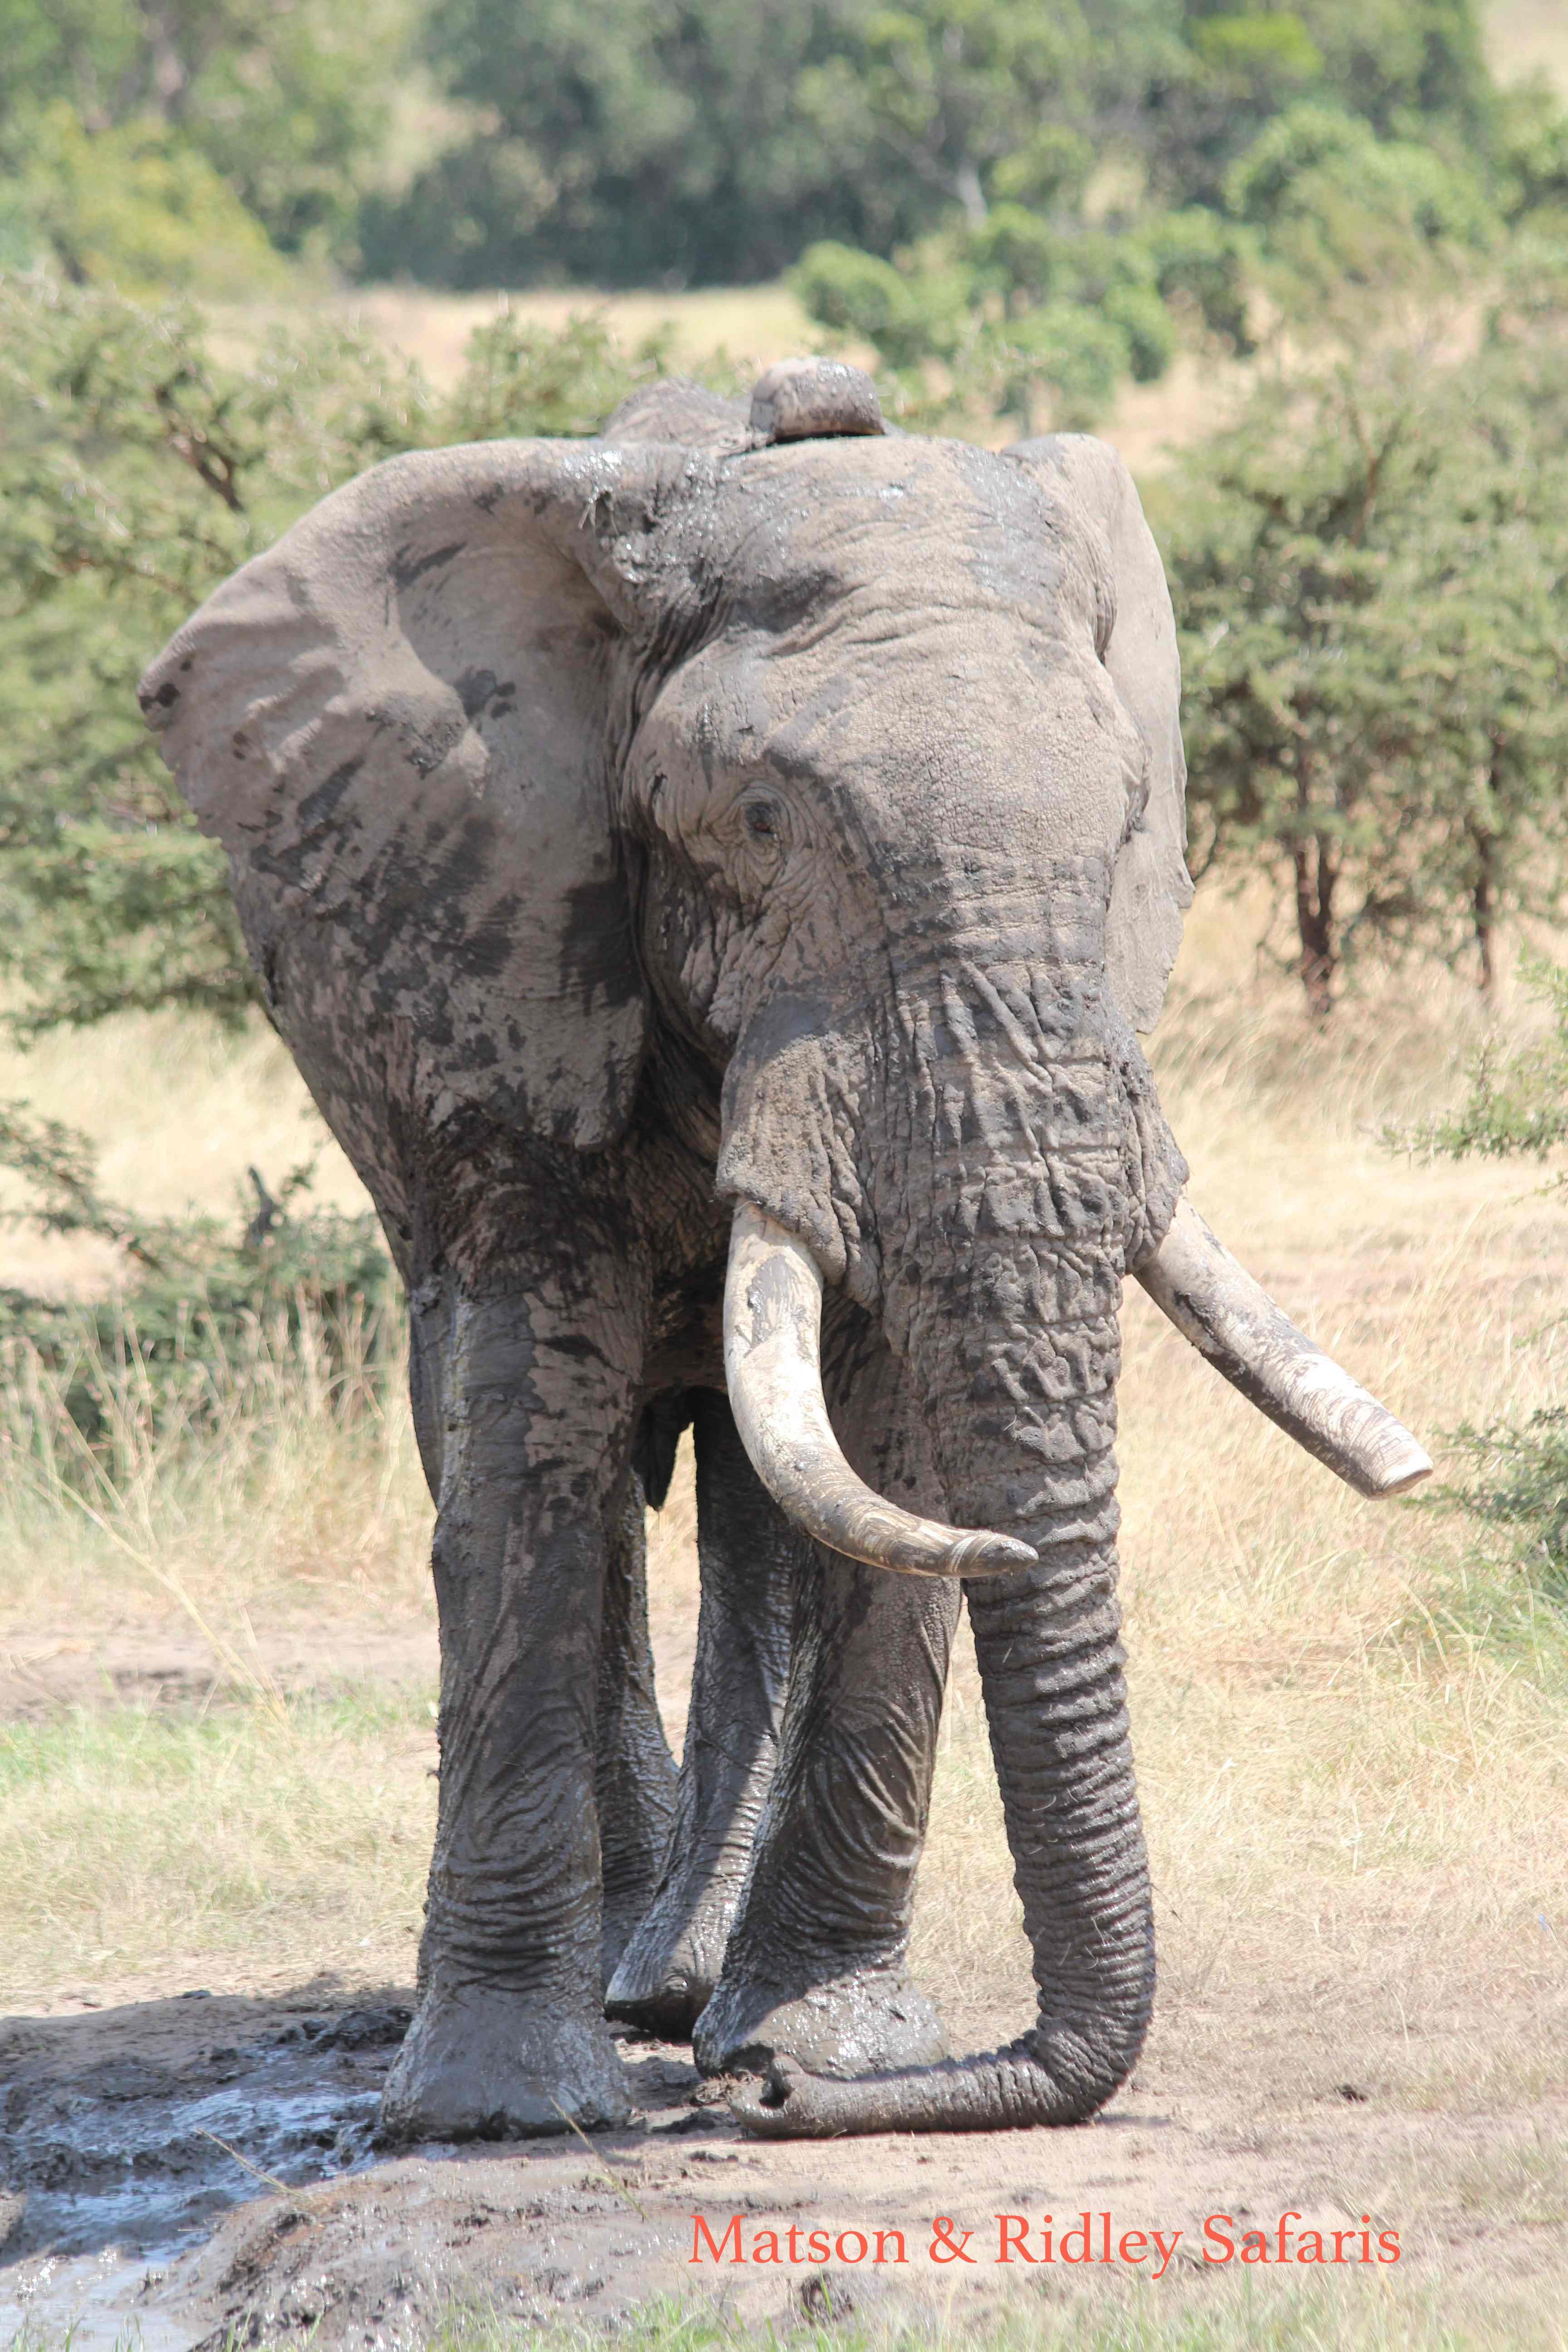 Lovely big elephant bull - taken on my group safari to the Masai Mara in Kenya last year